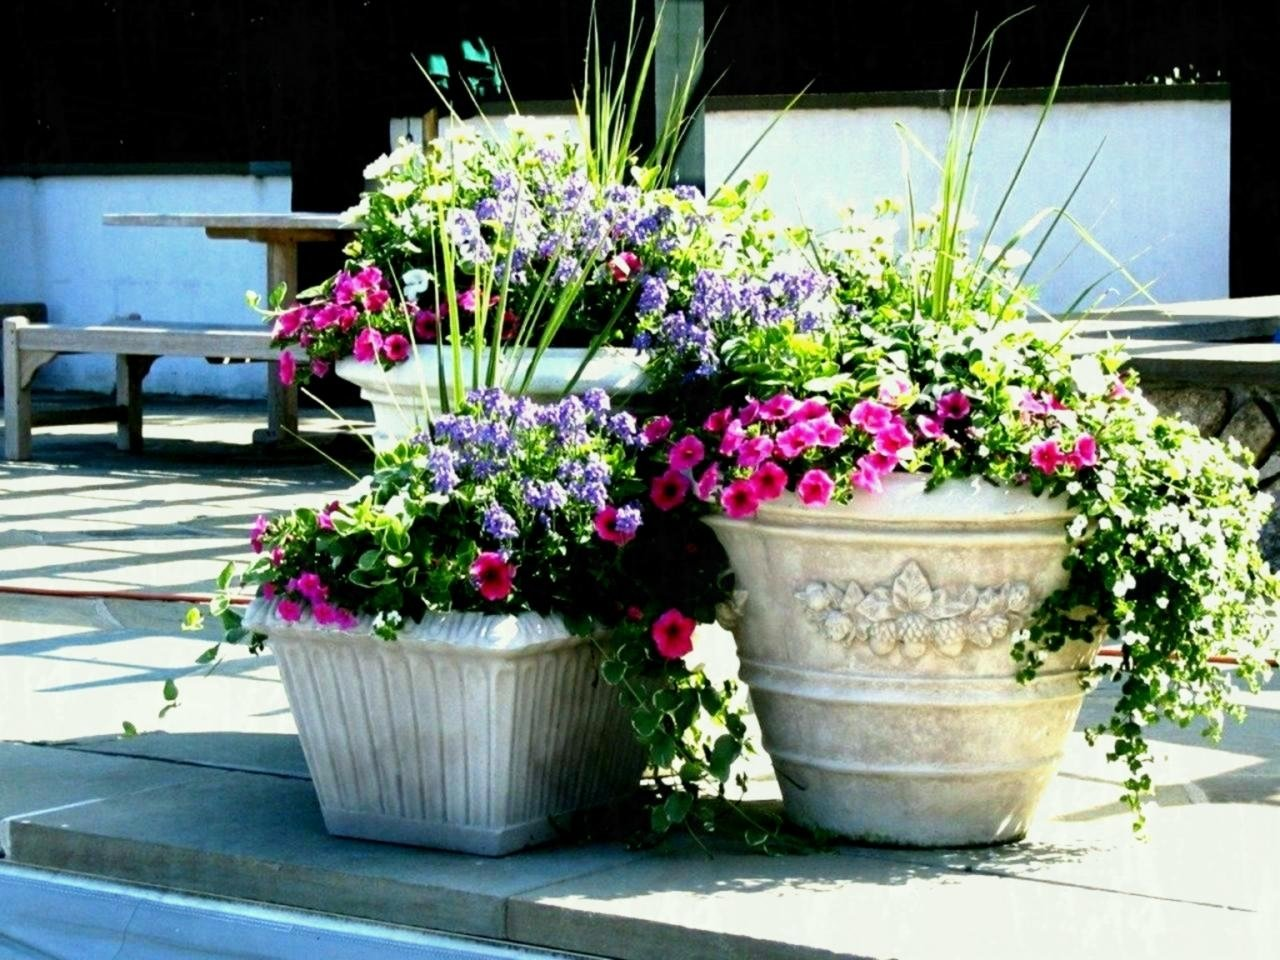 10 Nice Flower Pot Ideas For Patio full size of outside planters ideas patio flower pots planting great 2020